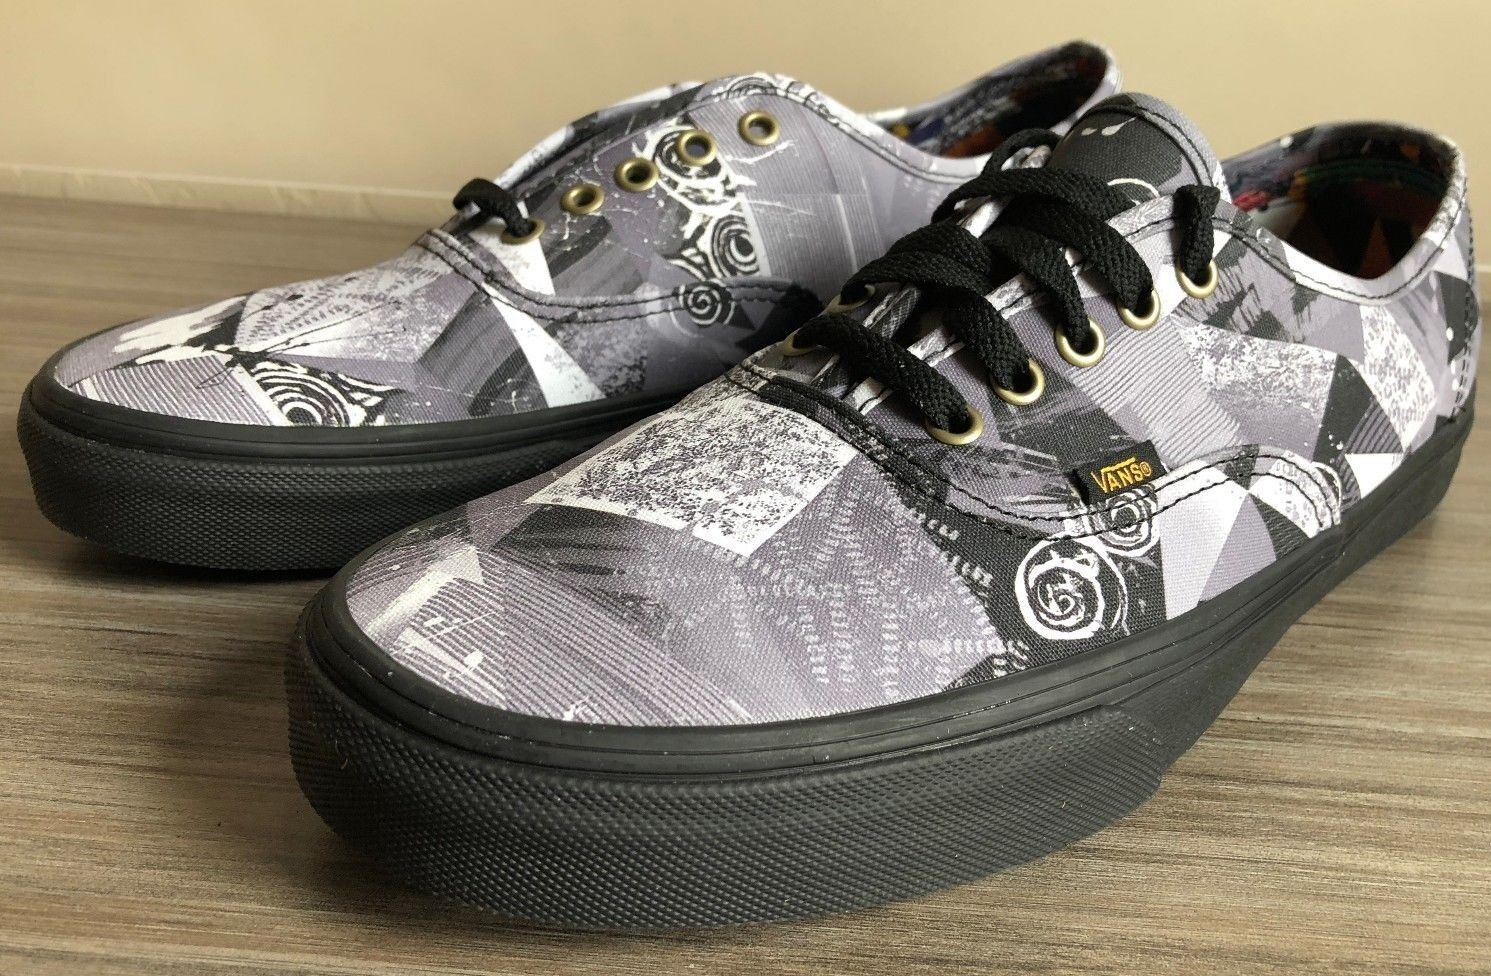 VANS AUTHENTIC ABSTRACT SKATE SHOES GRÖSSE HERREN 9.5